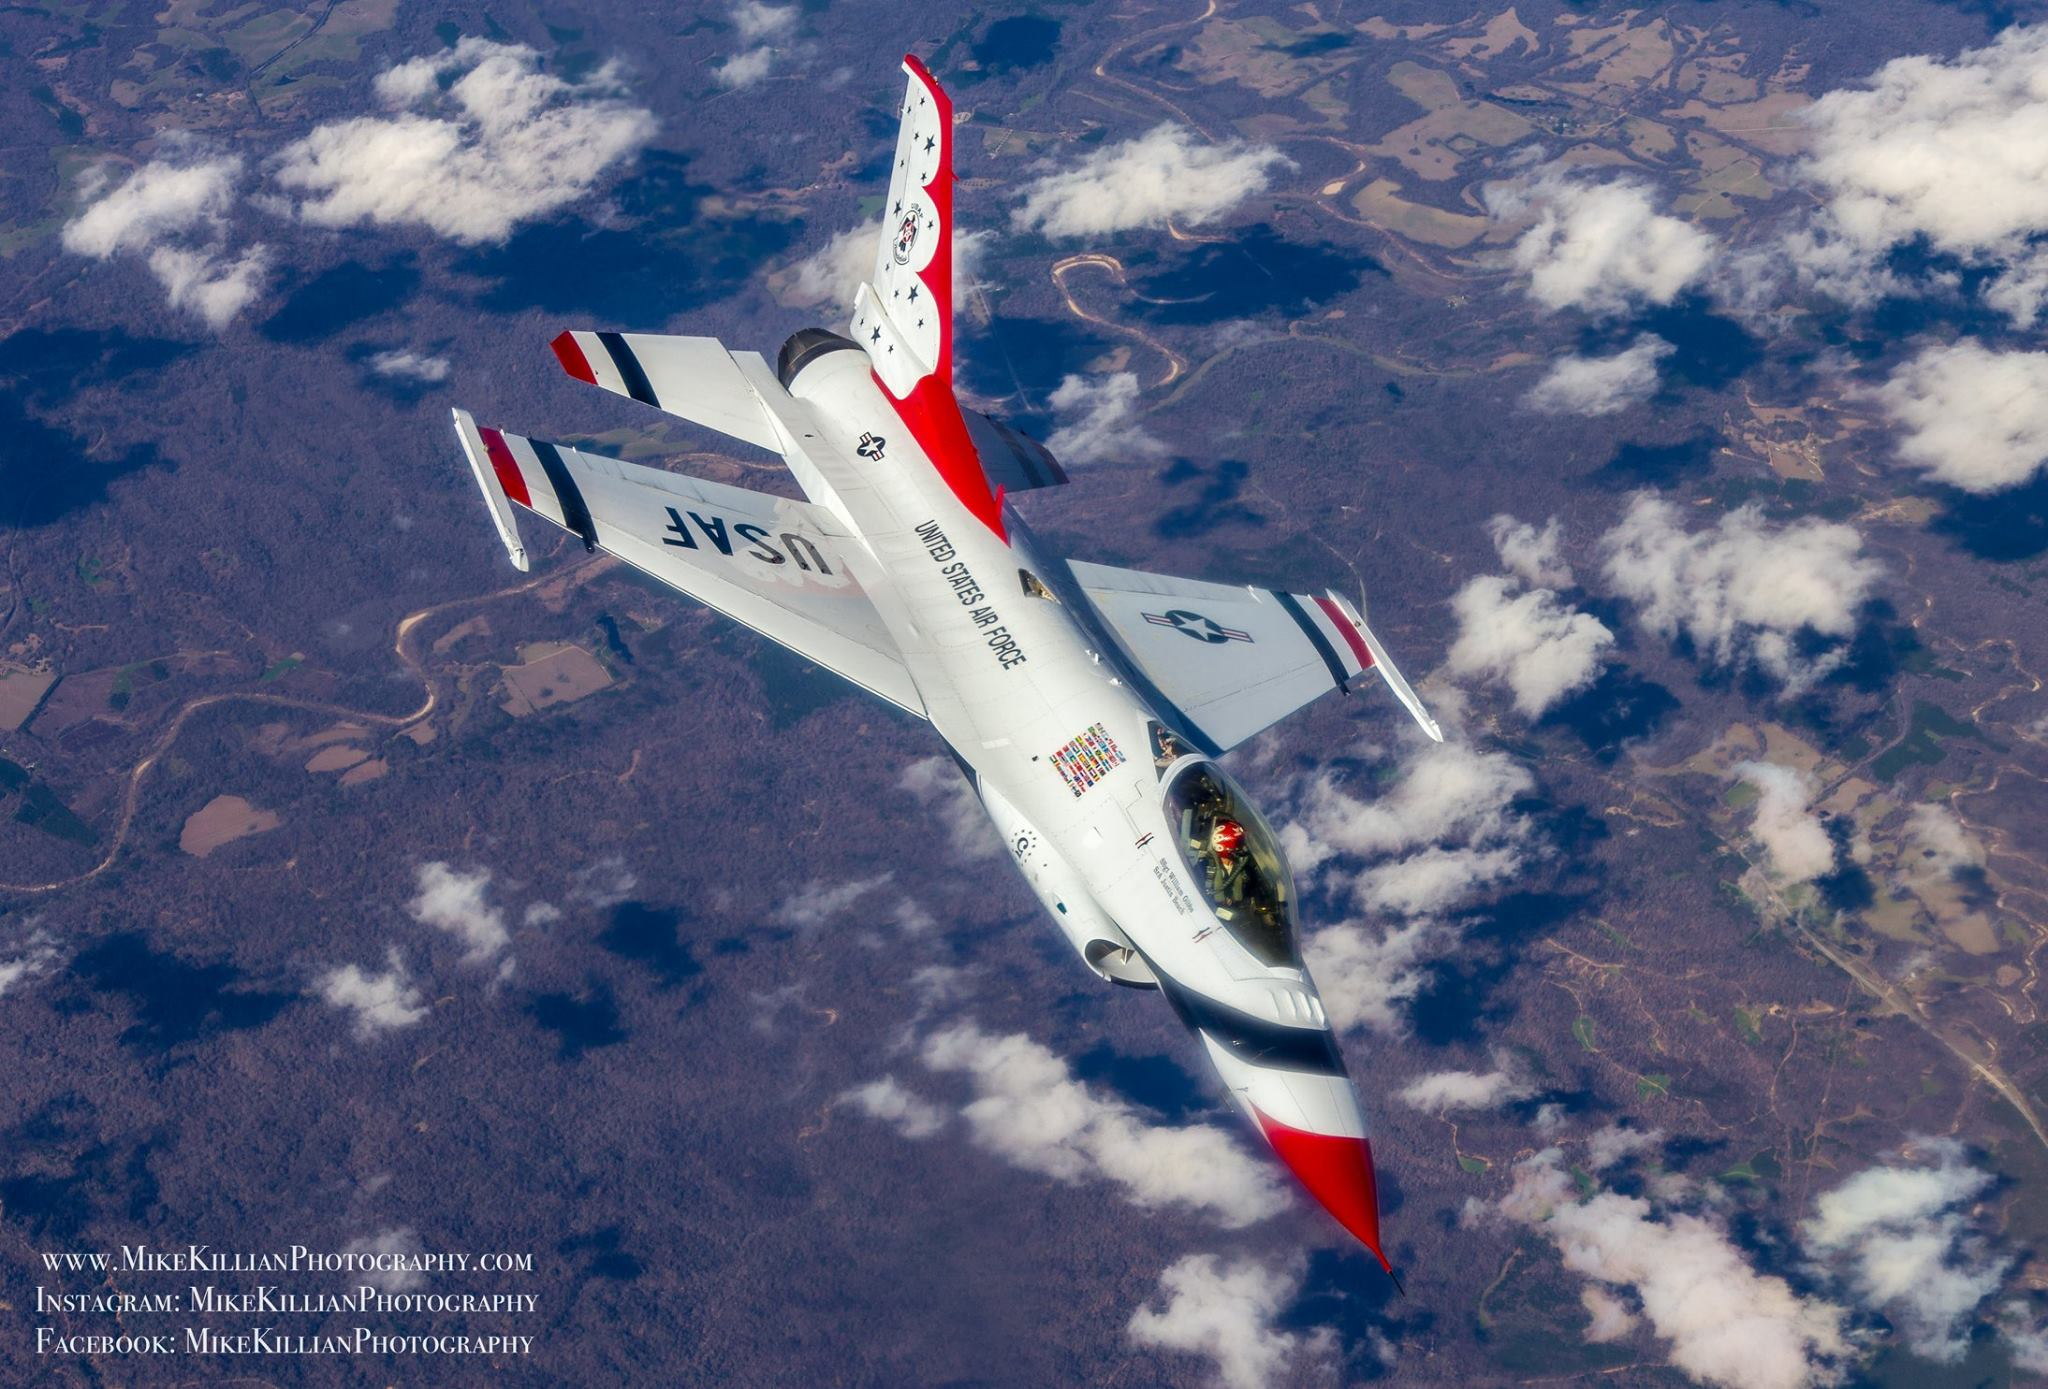 A red, white, and blue F-16 Fighting Falcon rolls out of a pitch following an aerial refueling from a KC-135 tanker. Photo courtesy of Mike Killian.